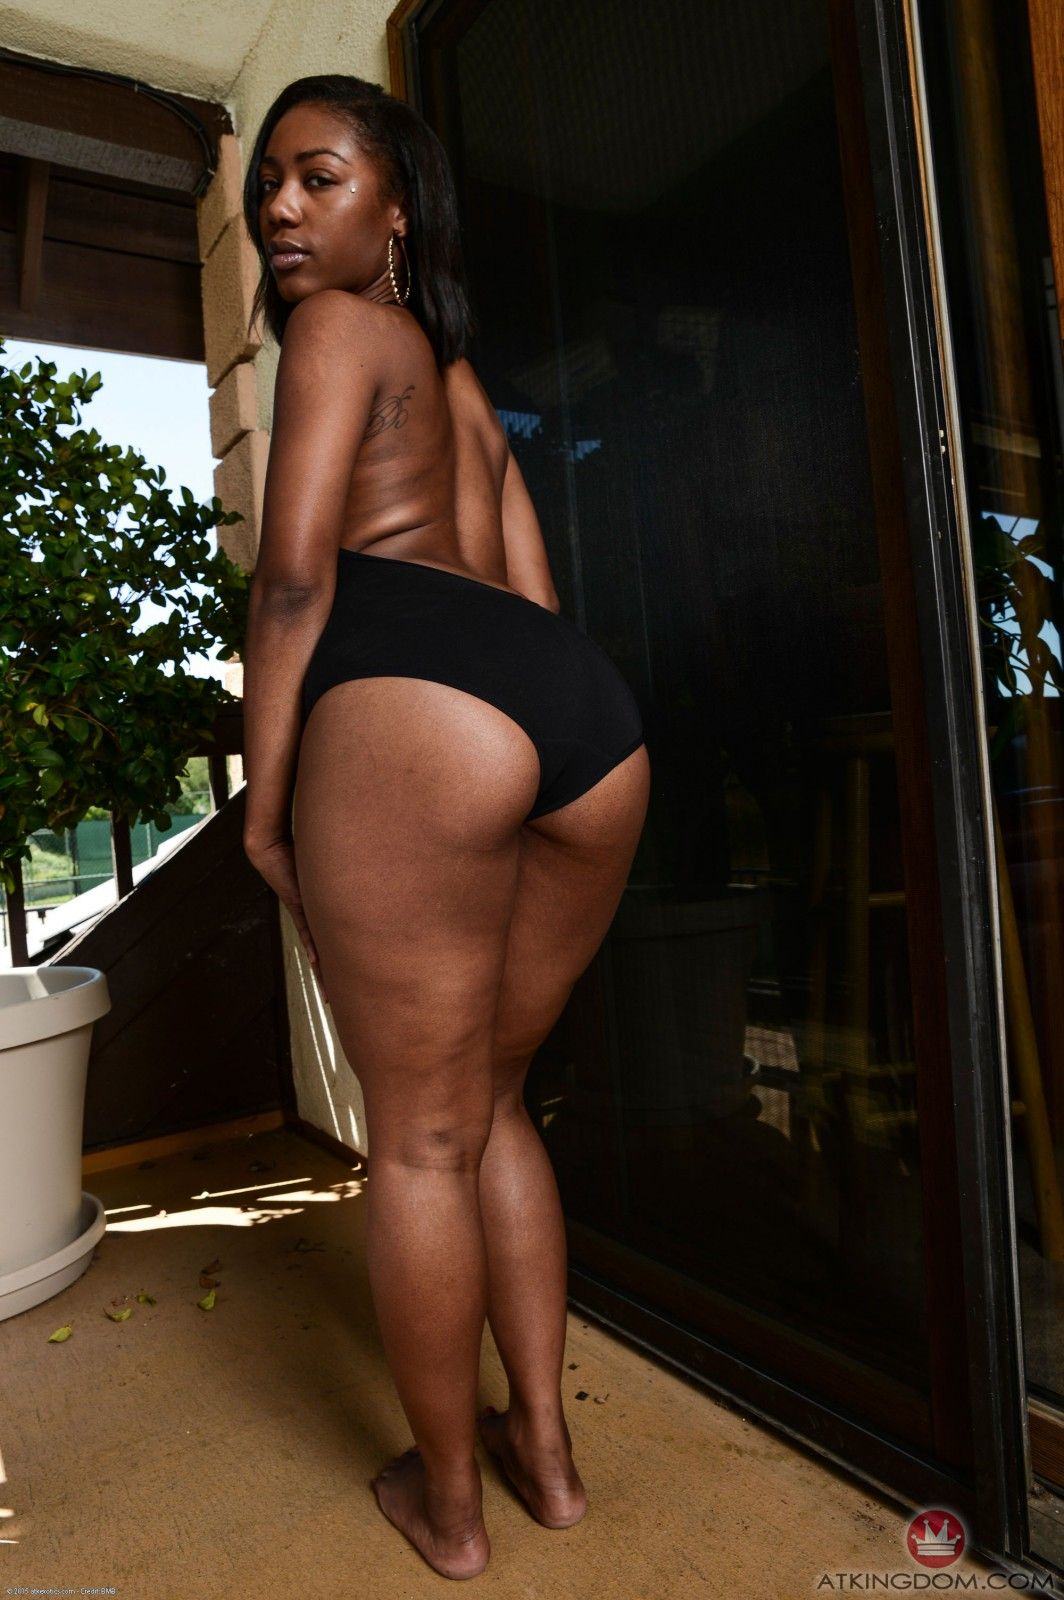 chanell heart makes your mind blank when she spreads her ass and